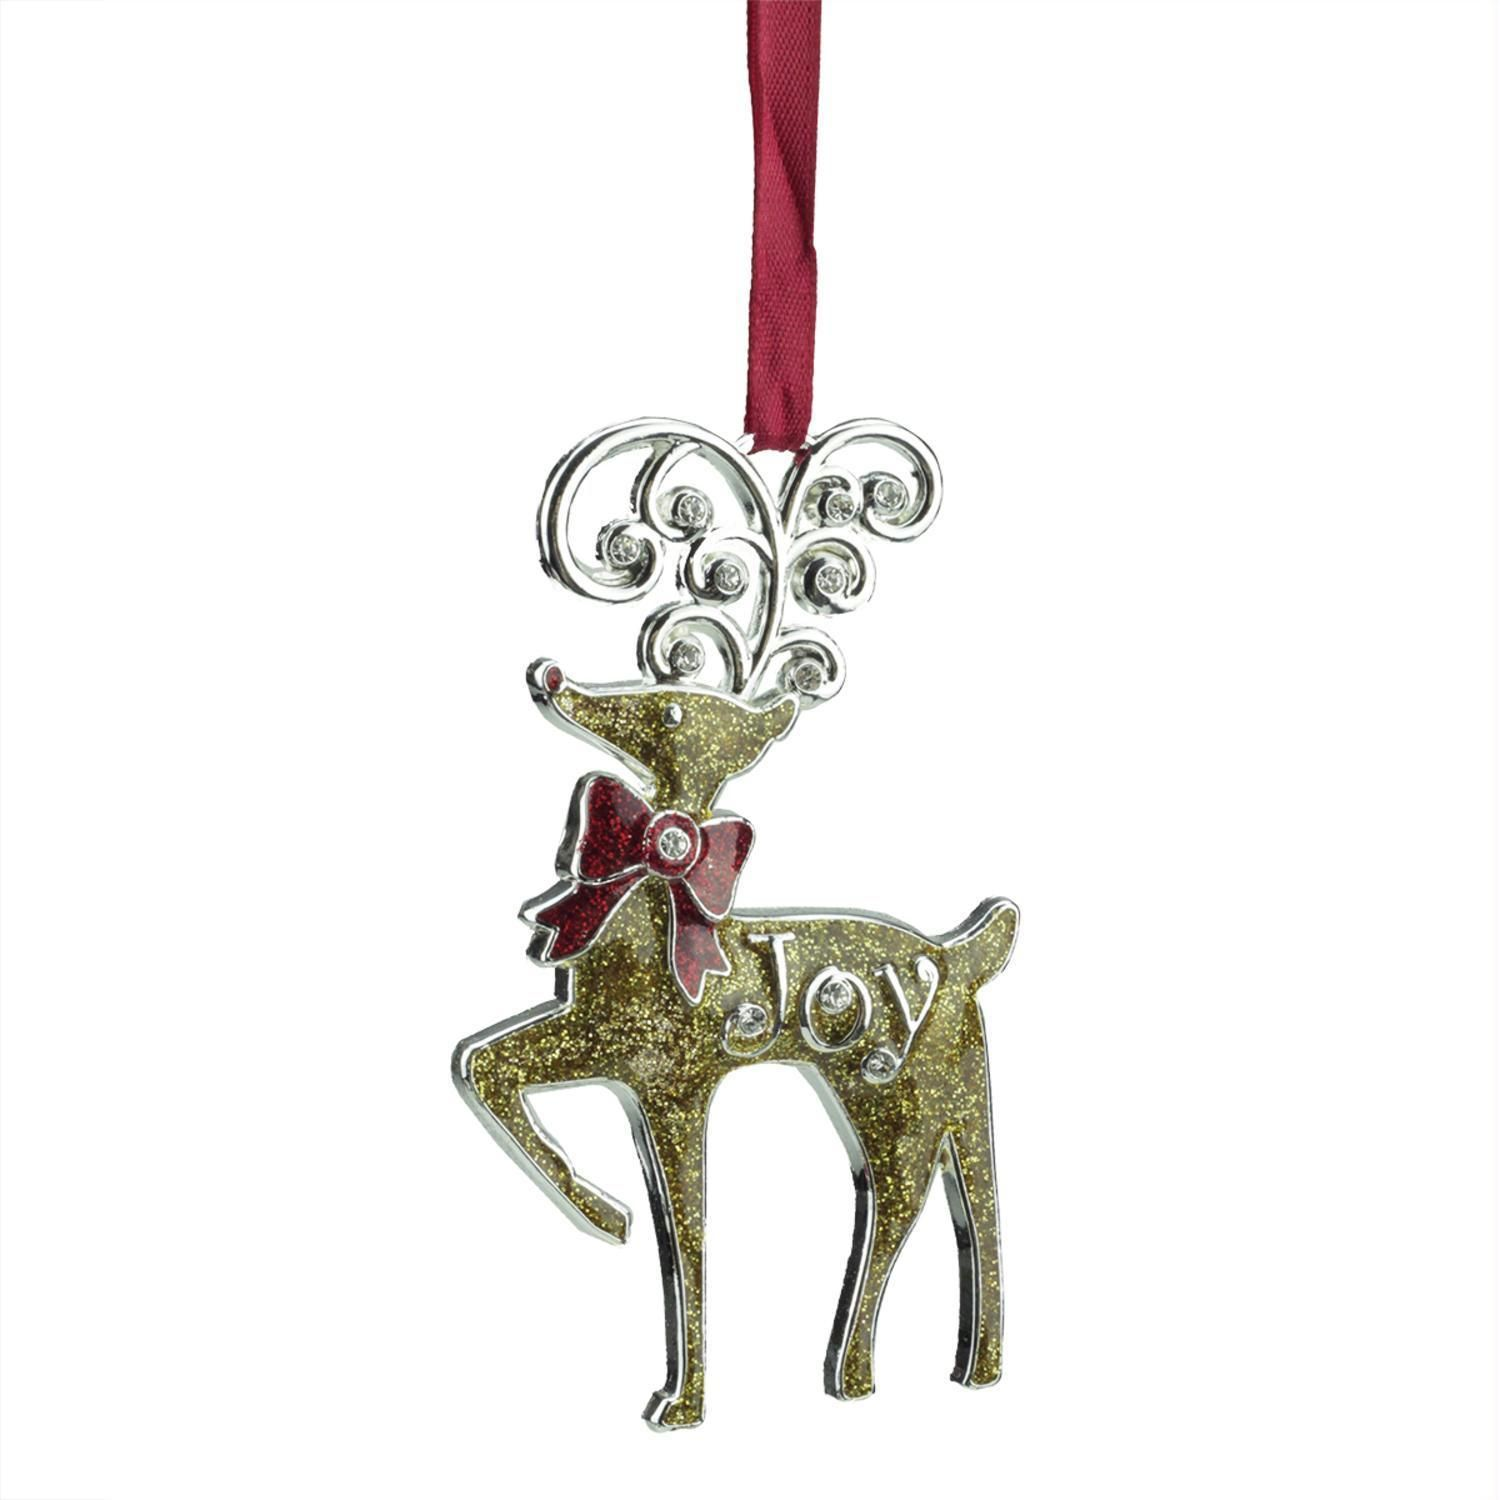 375 Regal Shiny Silver Plated Gold Glitter Joy Reindeer Ornament With